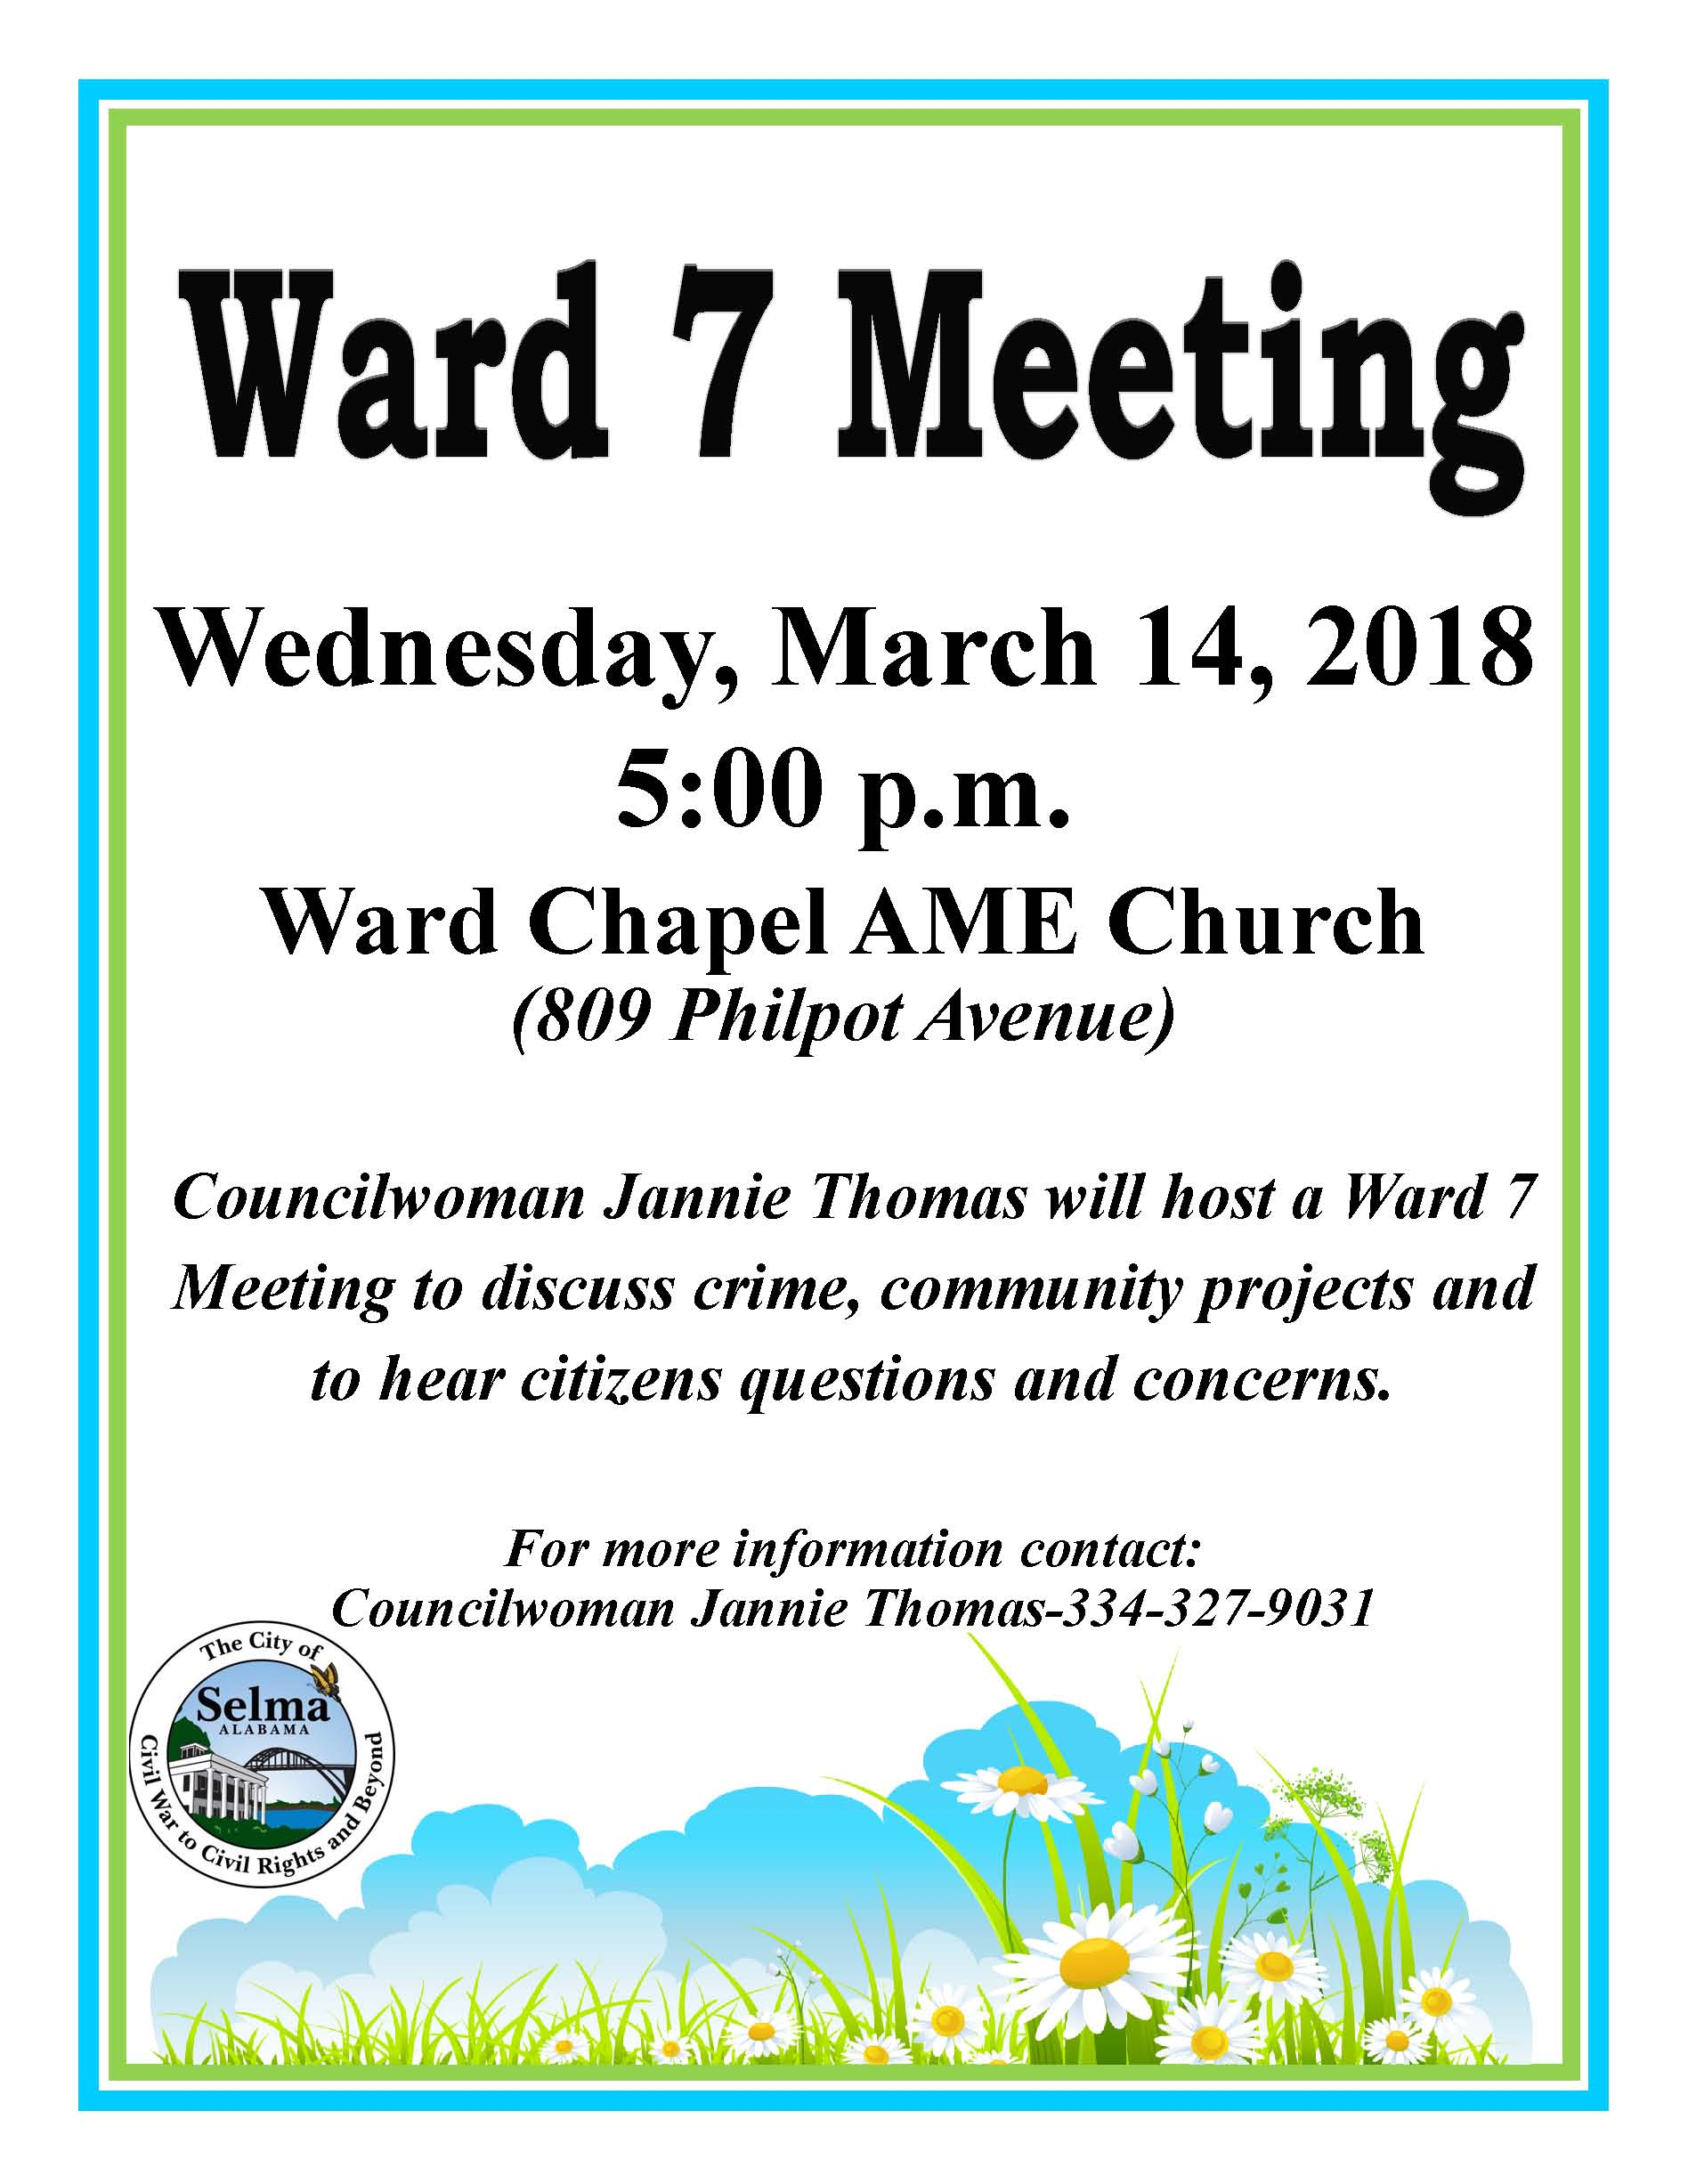 Thomas Ward 7 Meeting Flyer June 3.14.18